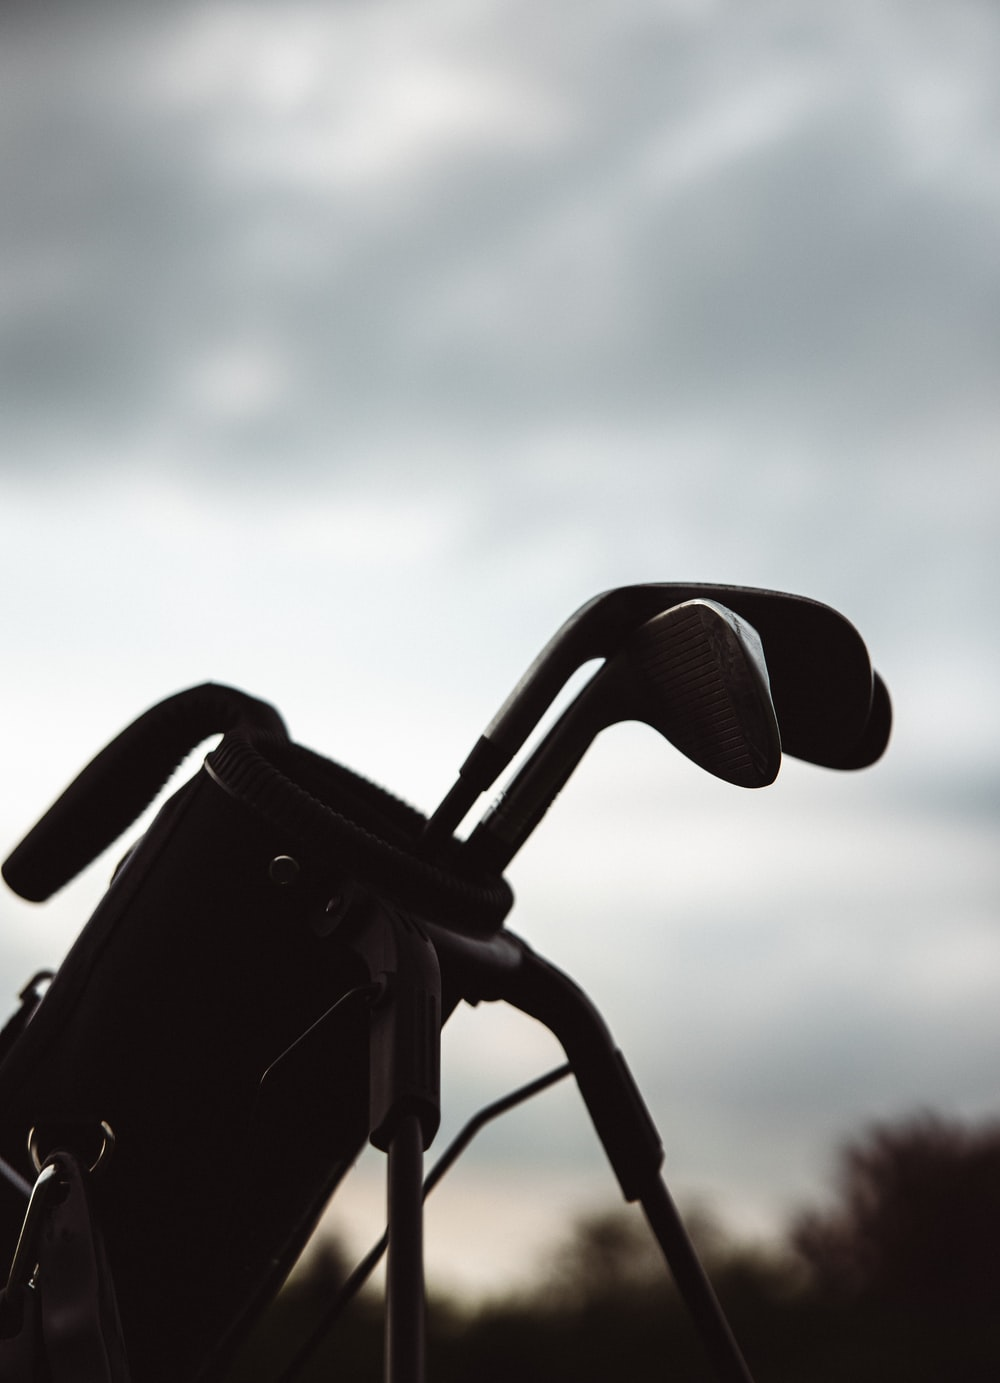 black and gray bicycle during daytime